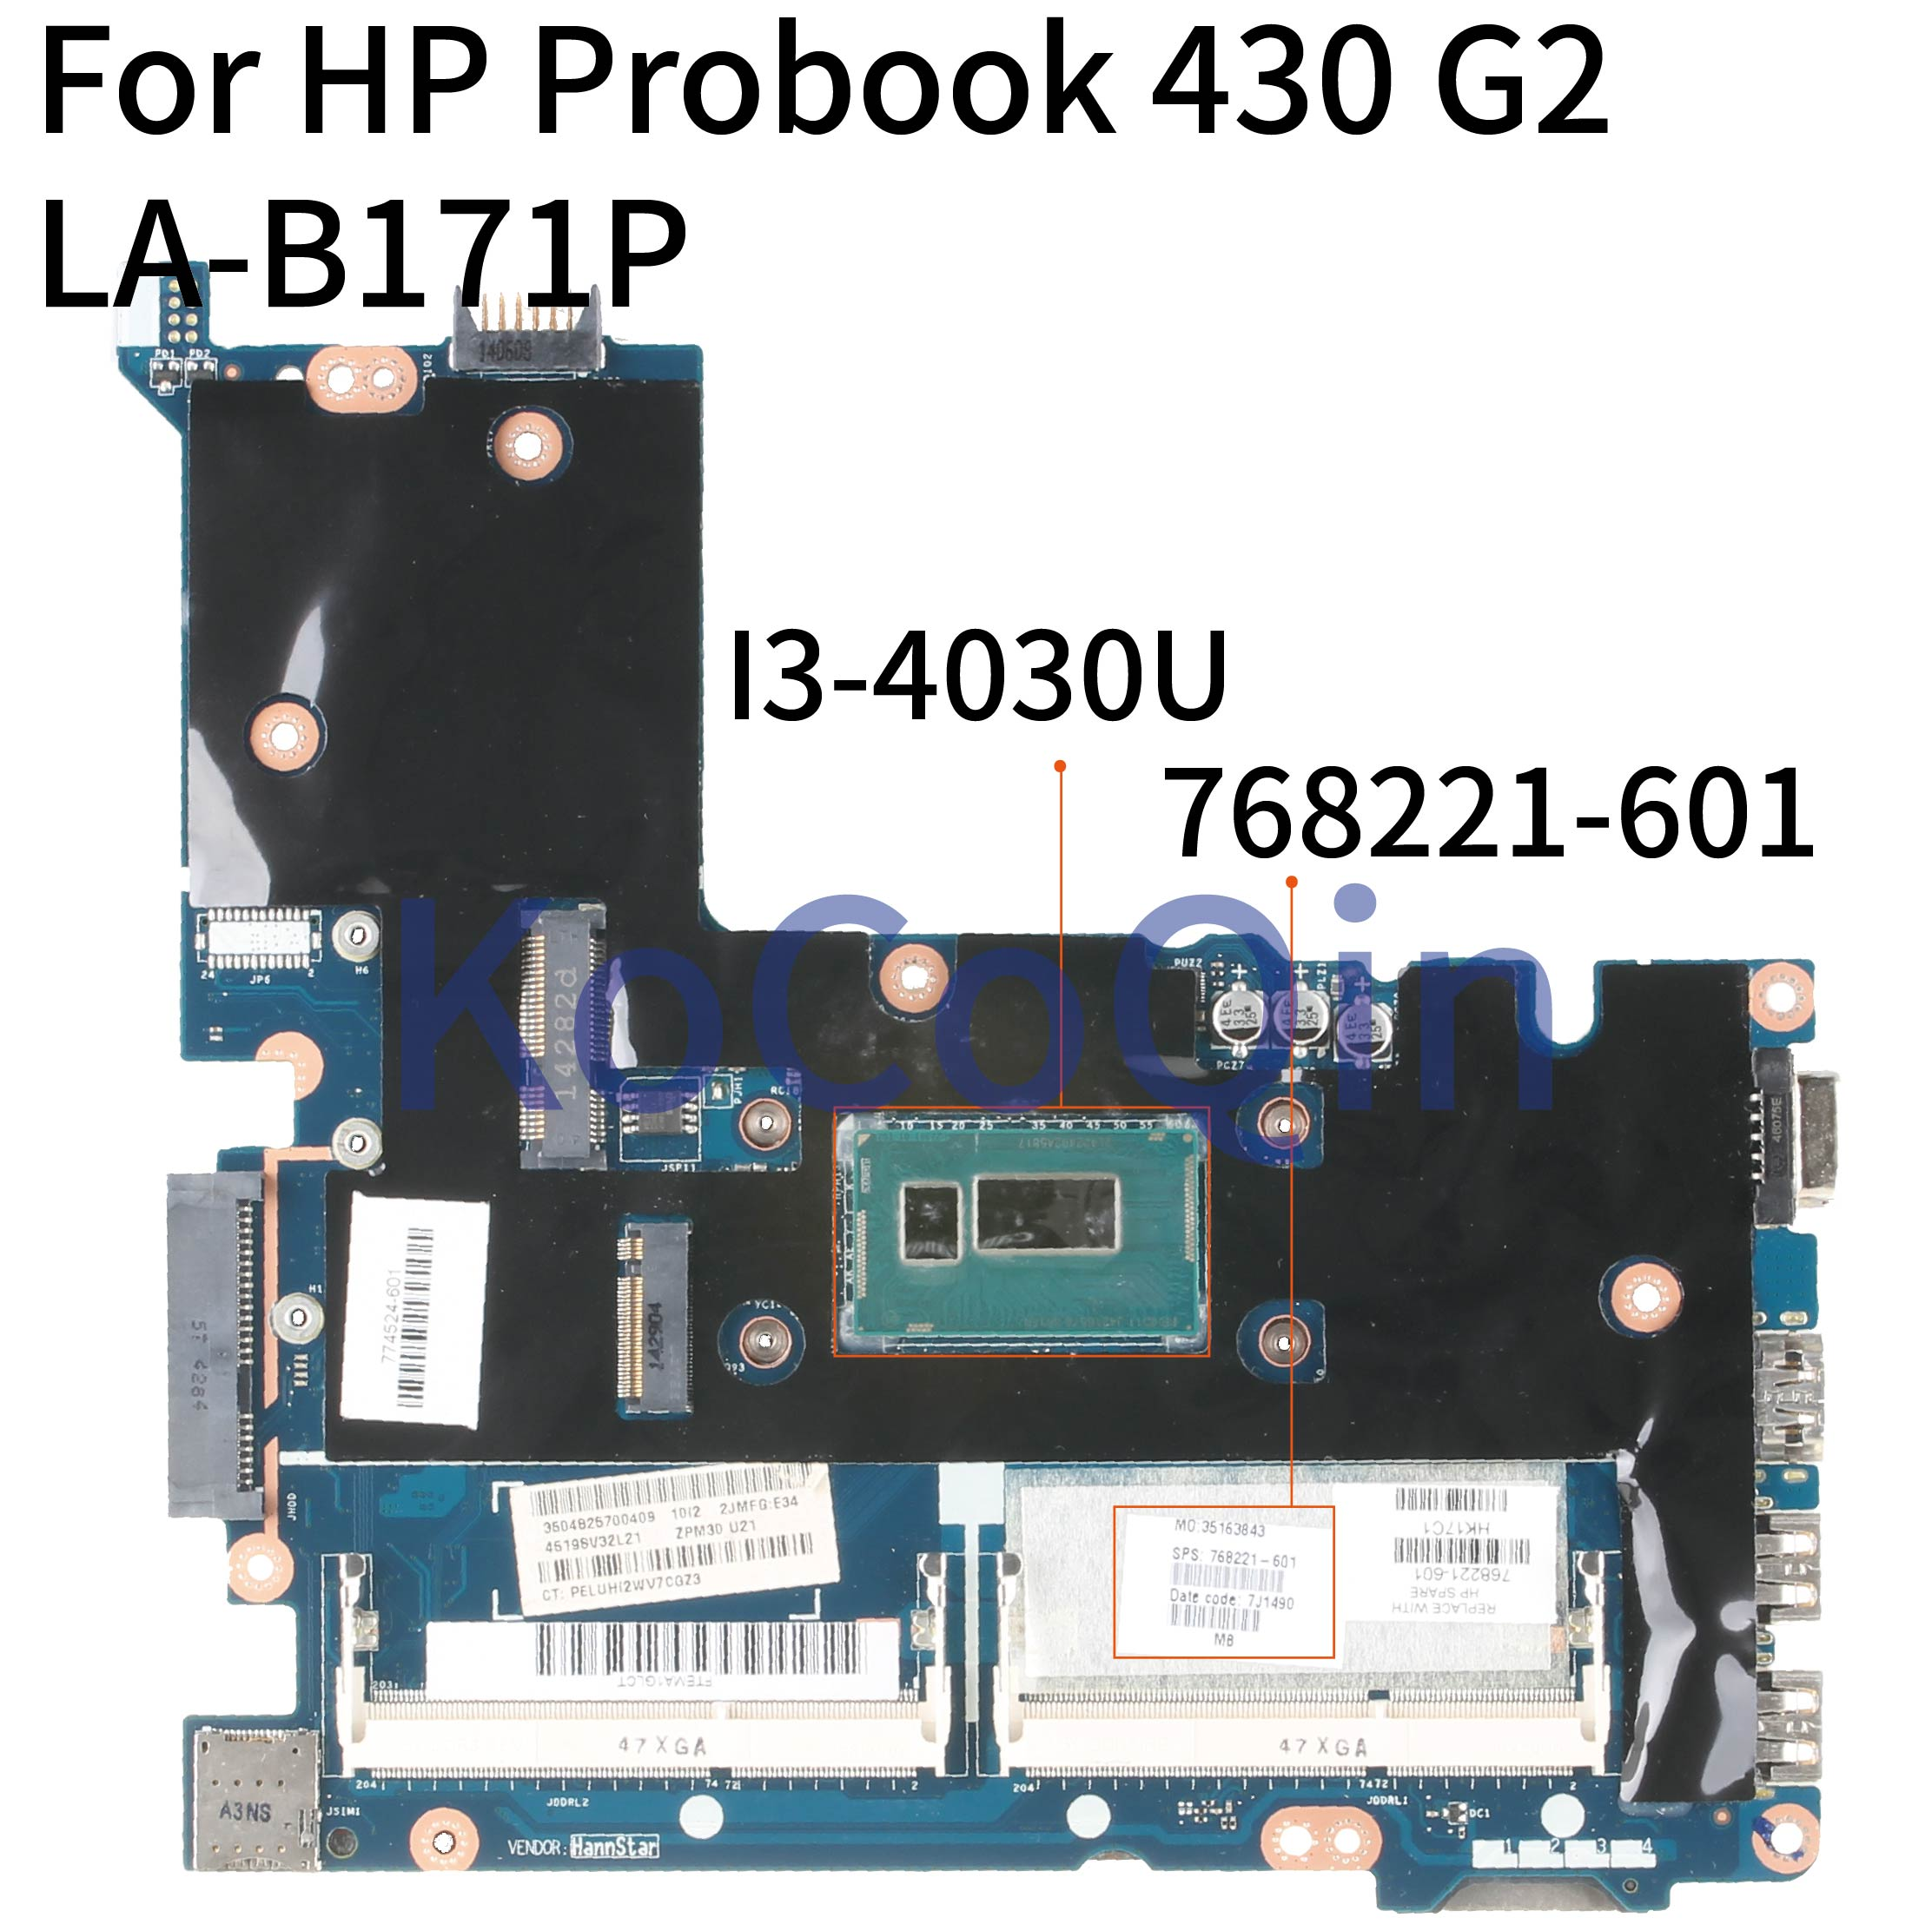 KoCoQin Laptop motherboard For HP Probook 430 G2 Core SR1EN I3-4030U Mainboard 768221-601 768221-501 768221-001 ZPM30 LA-B171P